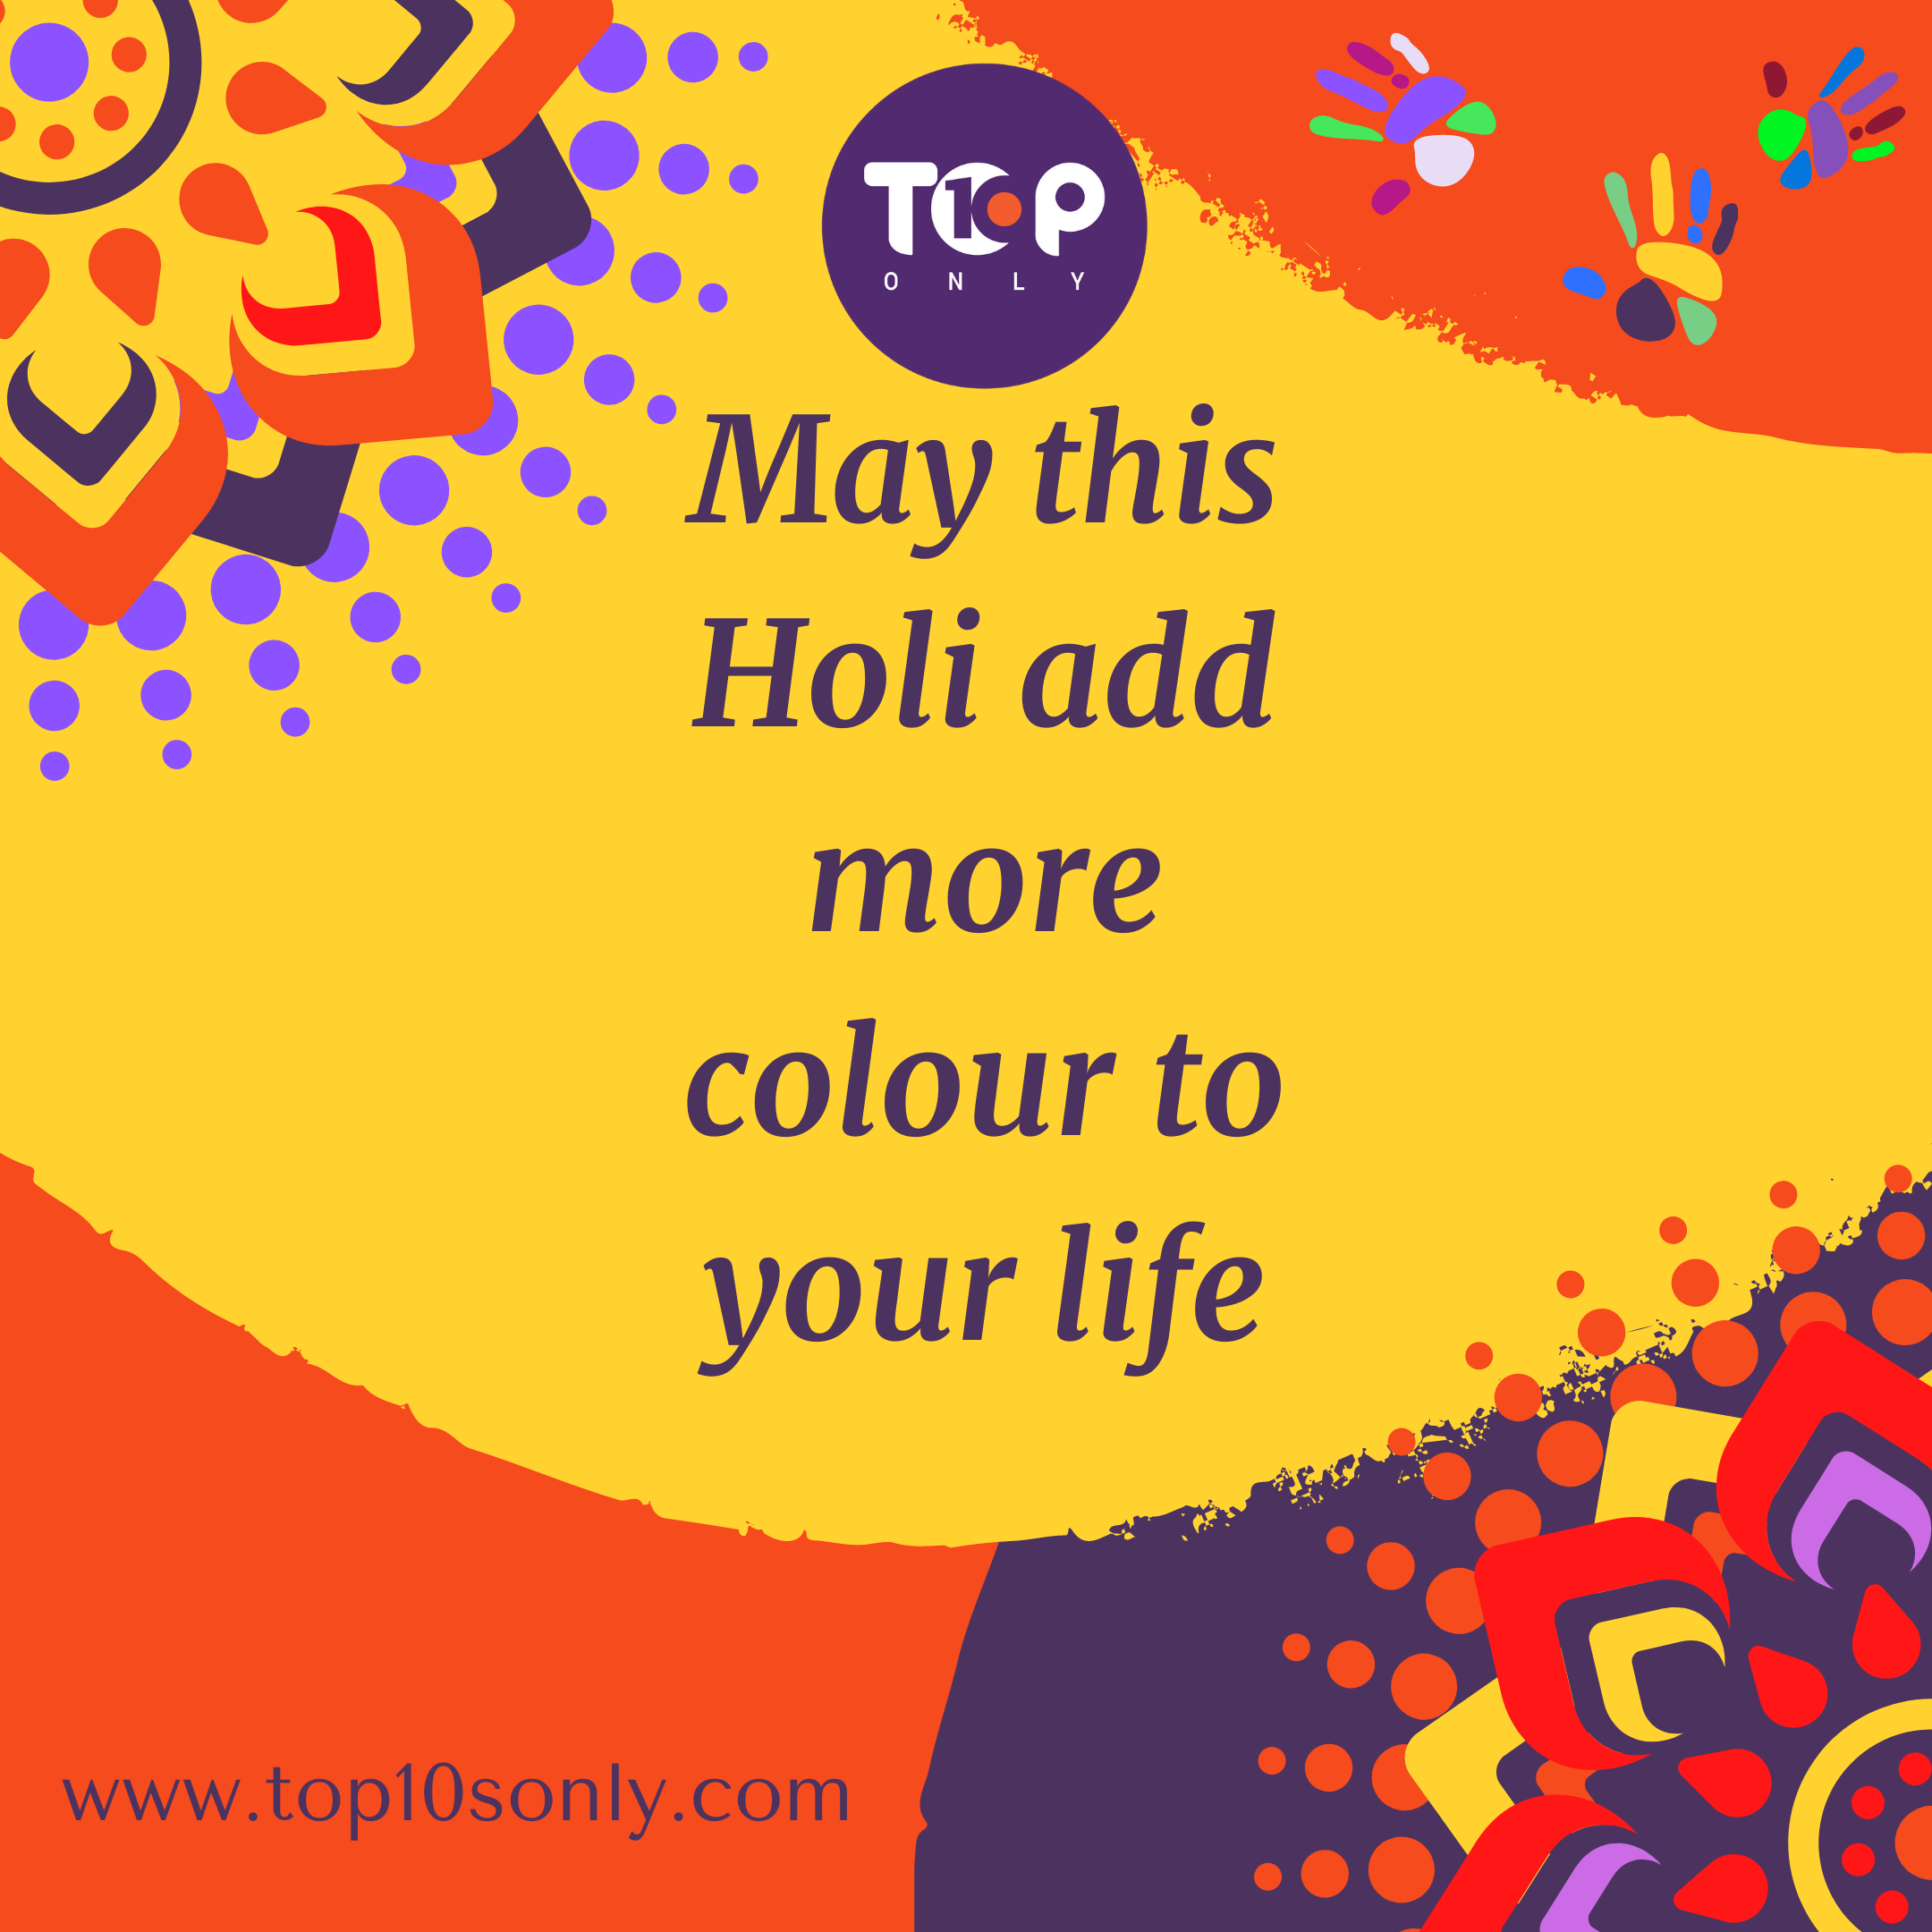 Happy Holi 2021 Best Wishes Festival of Colours From Our Family To Yours